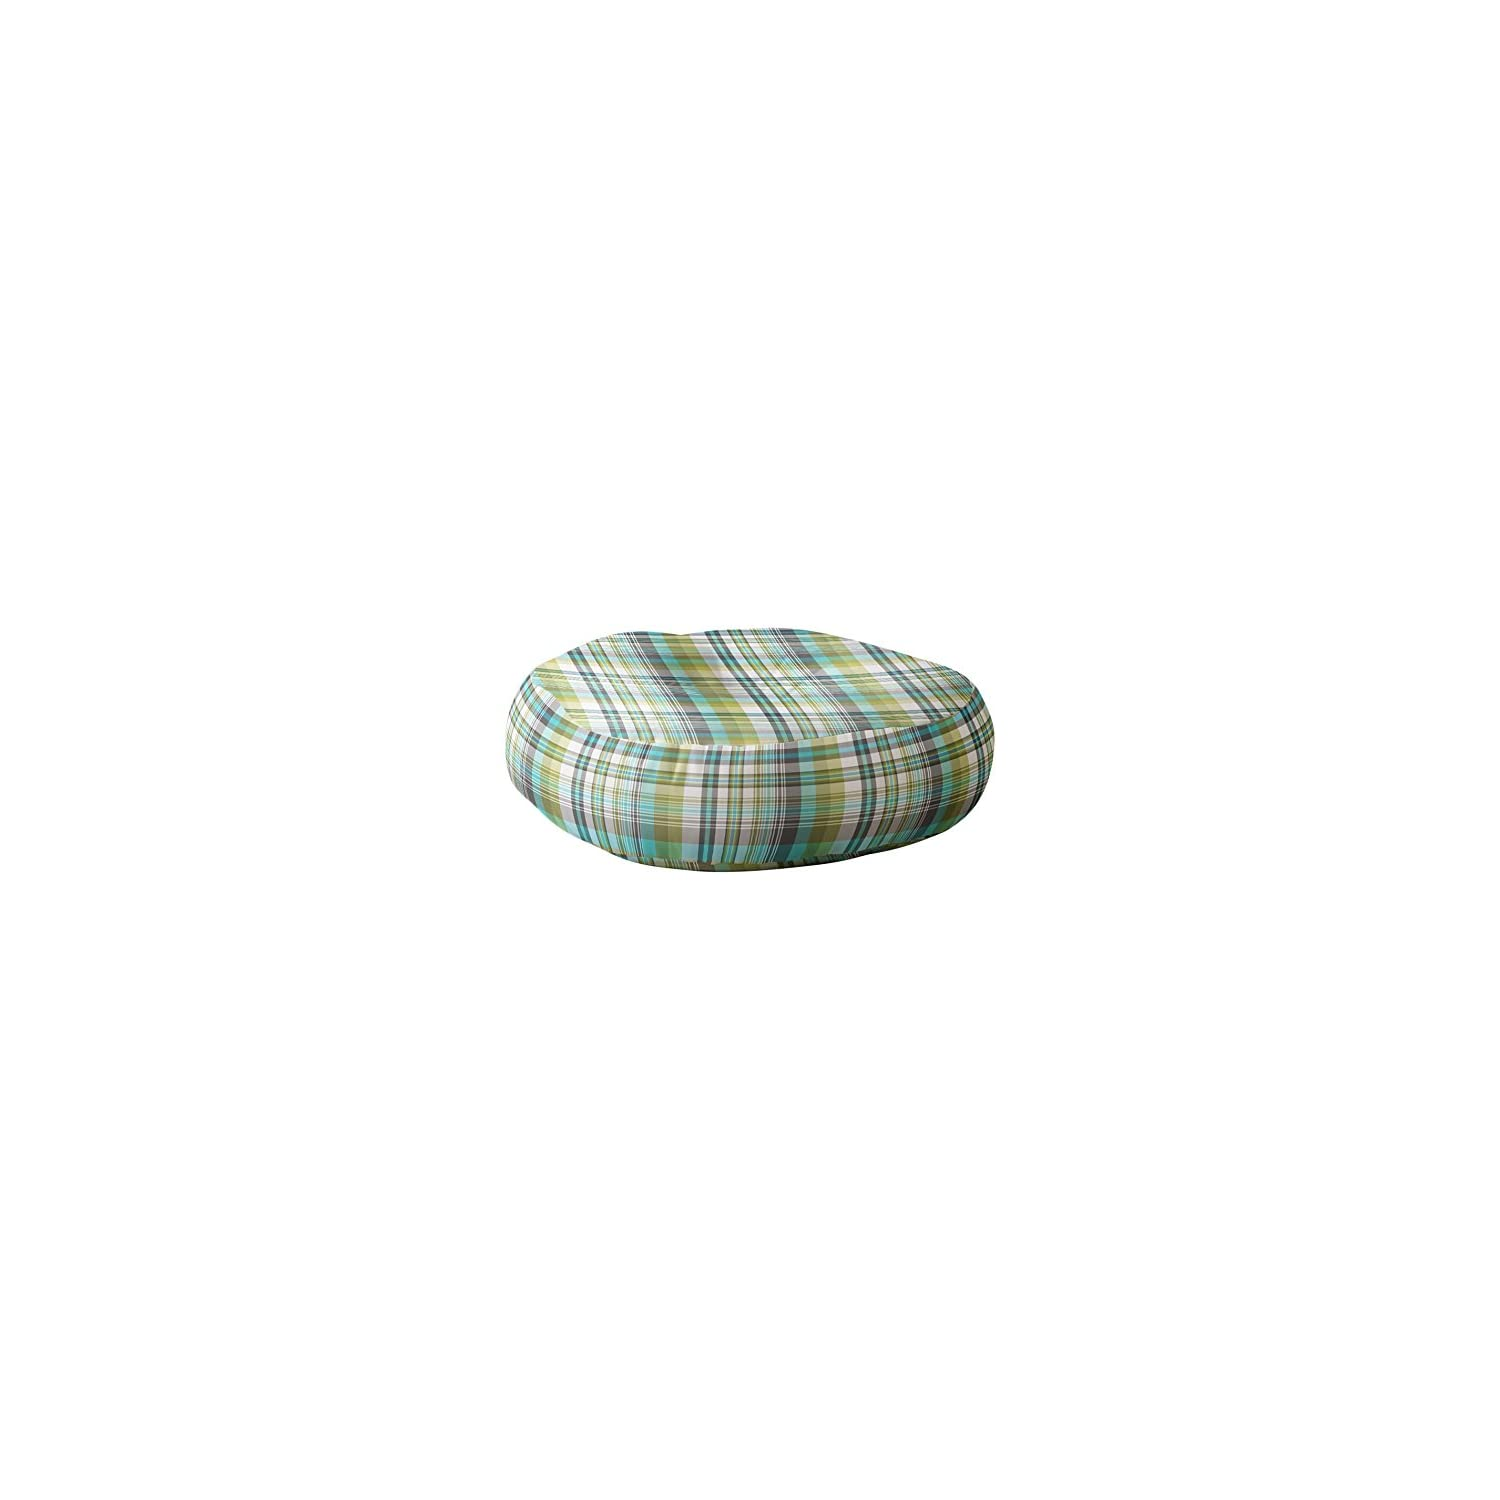 Deny Designs Wendy Kendall Floor Pillow, Carousel